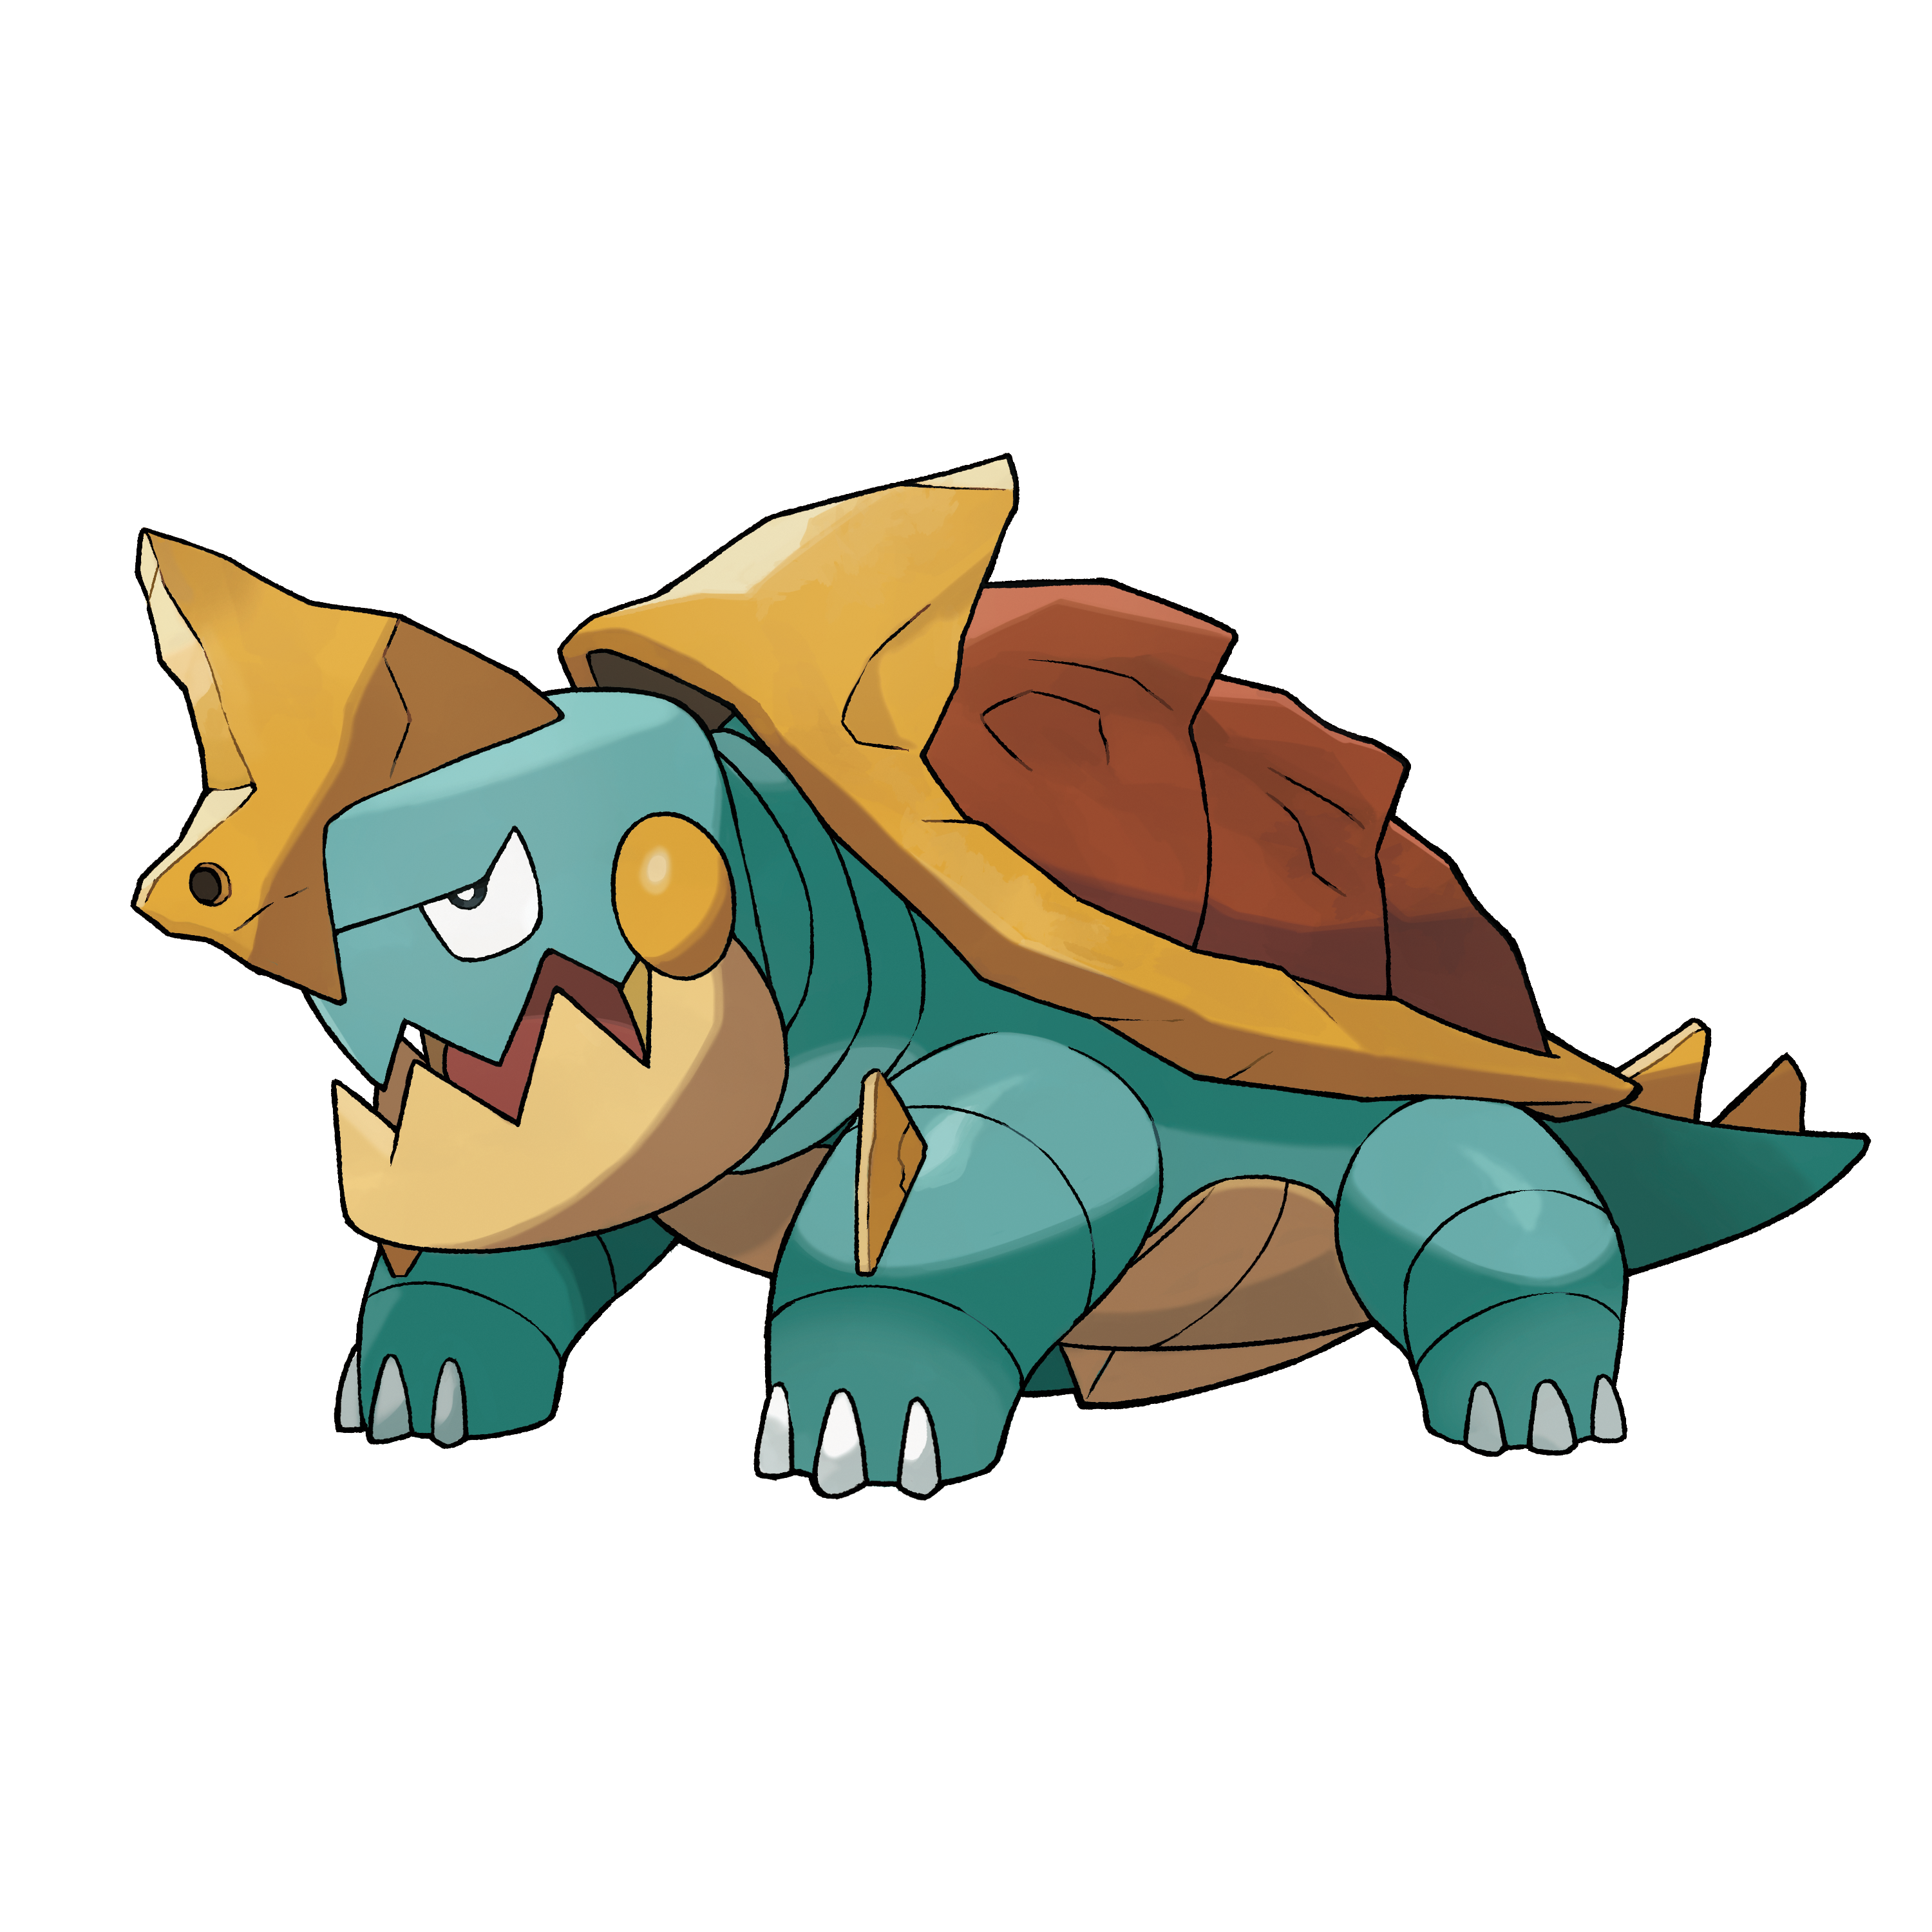 Drednaw_-_Pokemon_Sword_and_Shield.png